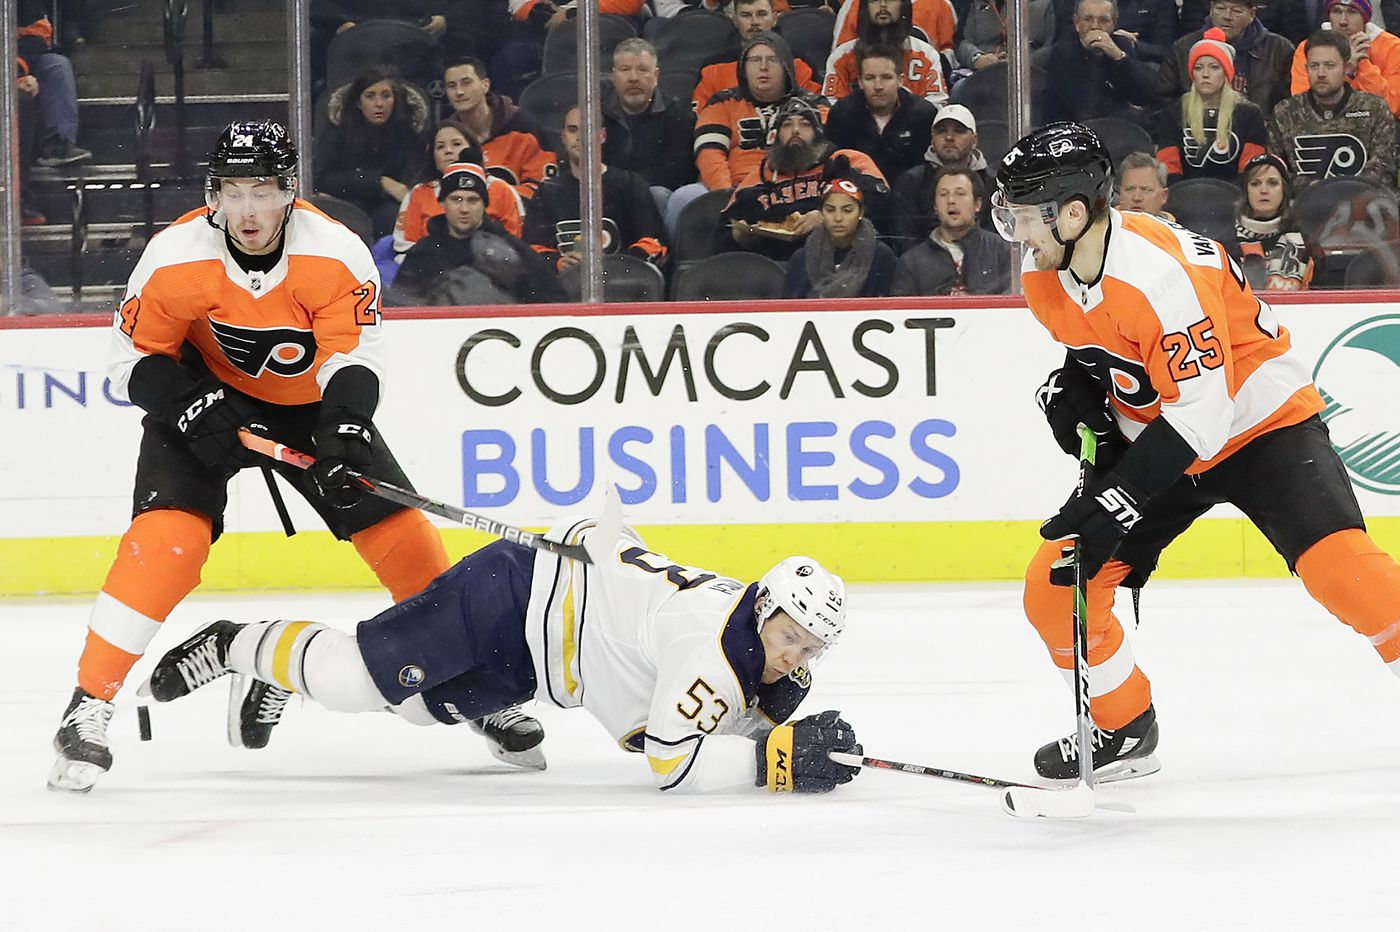 Travis Konecny is gritty, the NHL is dumb, and other observations from the Flyers' 6-1 win over the Sabres | Mike Sielski